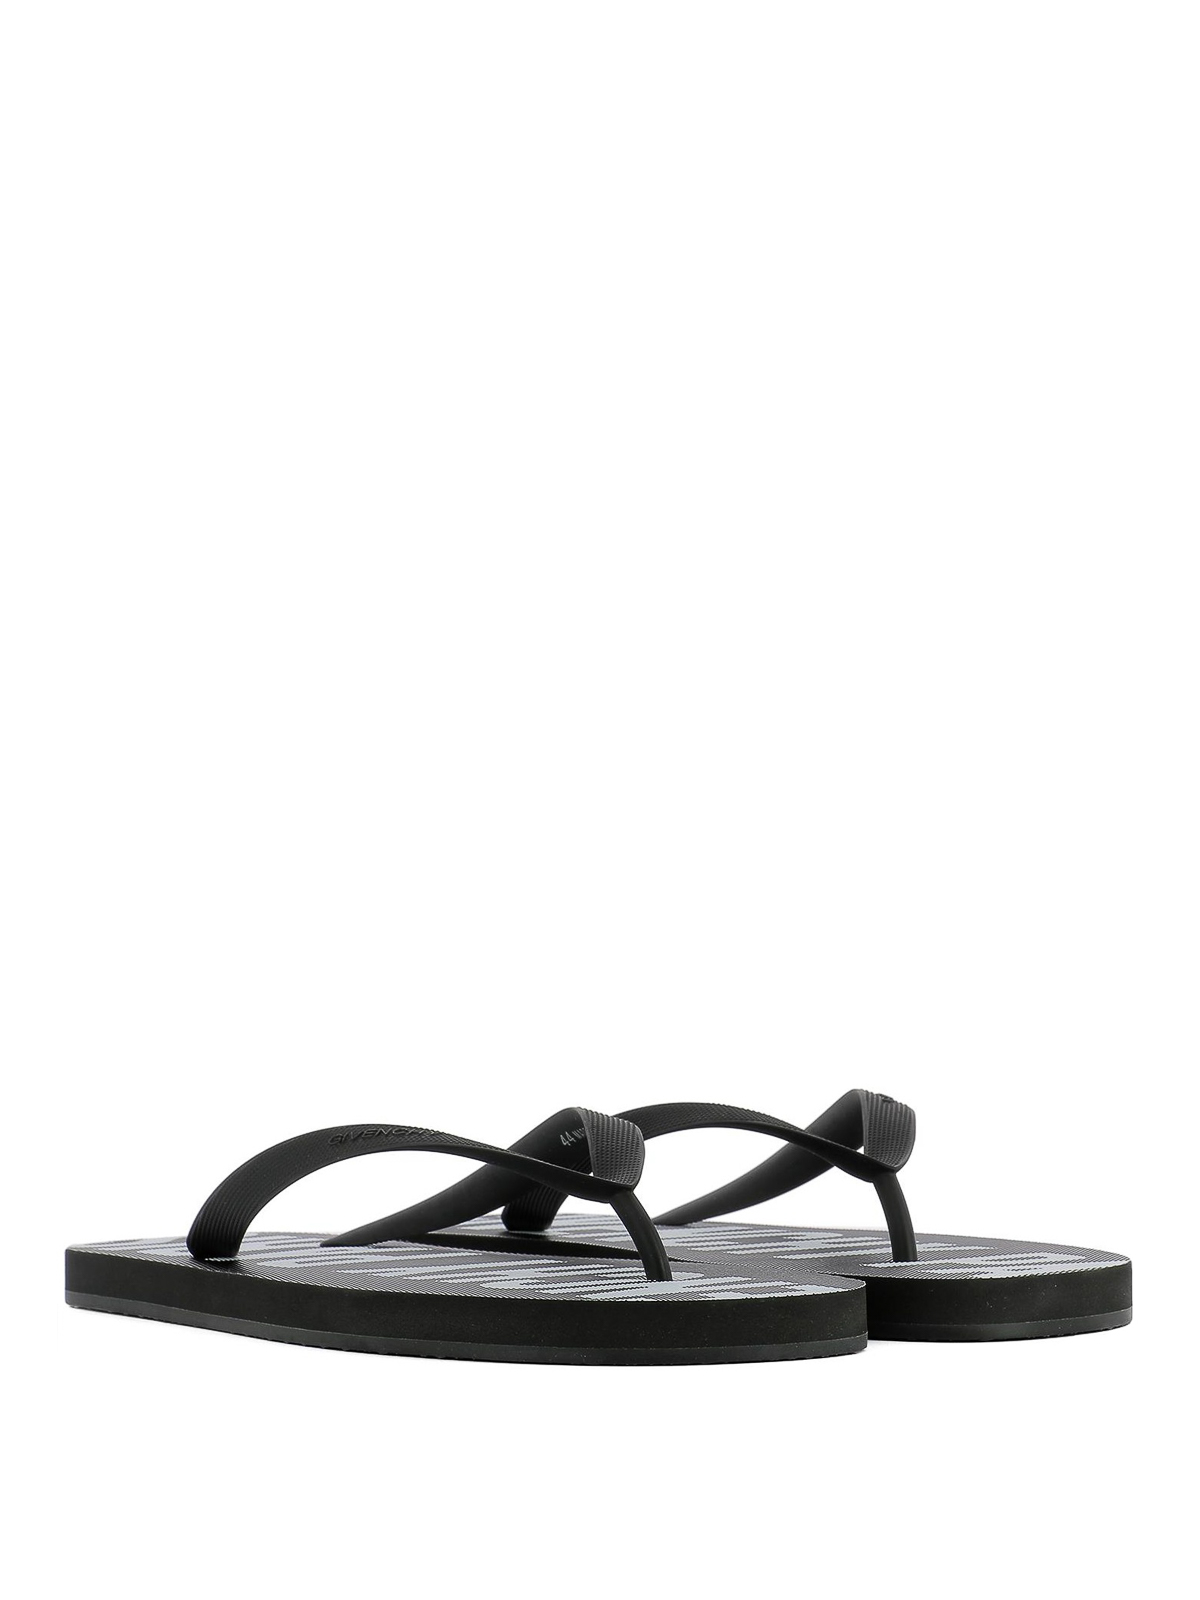 Givenchy - Rubber thong flip flops